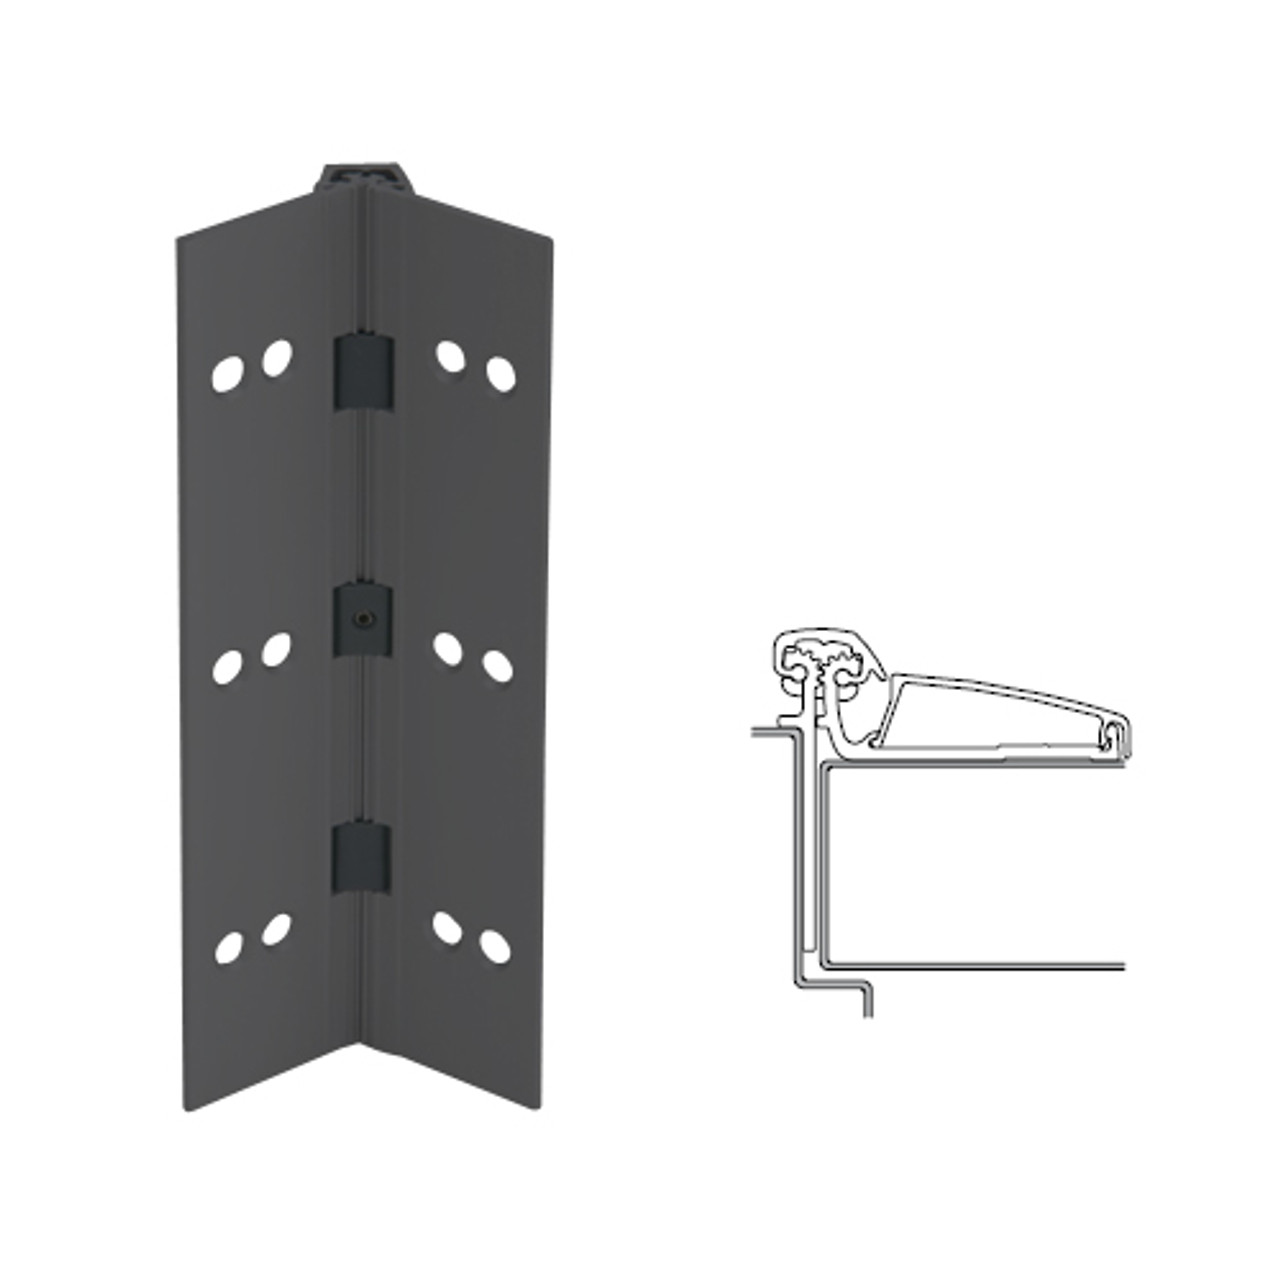 046XY-315AN-120-SECWDHM IVES Adjustable Half Surface Continuous Geared Hinges with Security Screws - Hex Pin Drive in Anodized Black